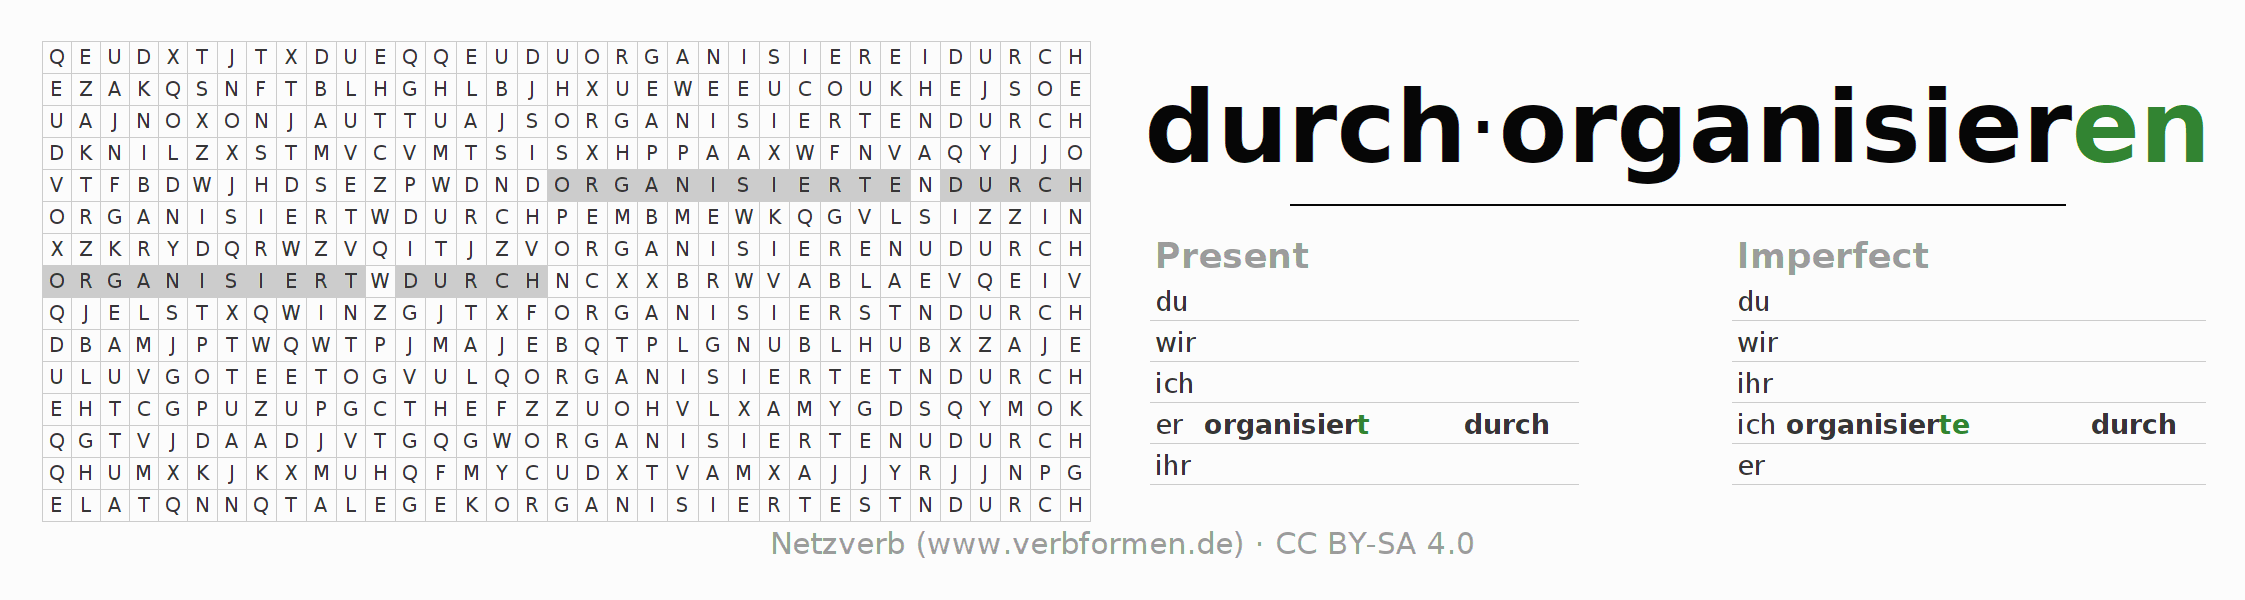 Word search puzzle for the conjugation of the verb durchorganisieren